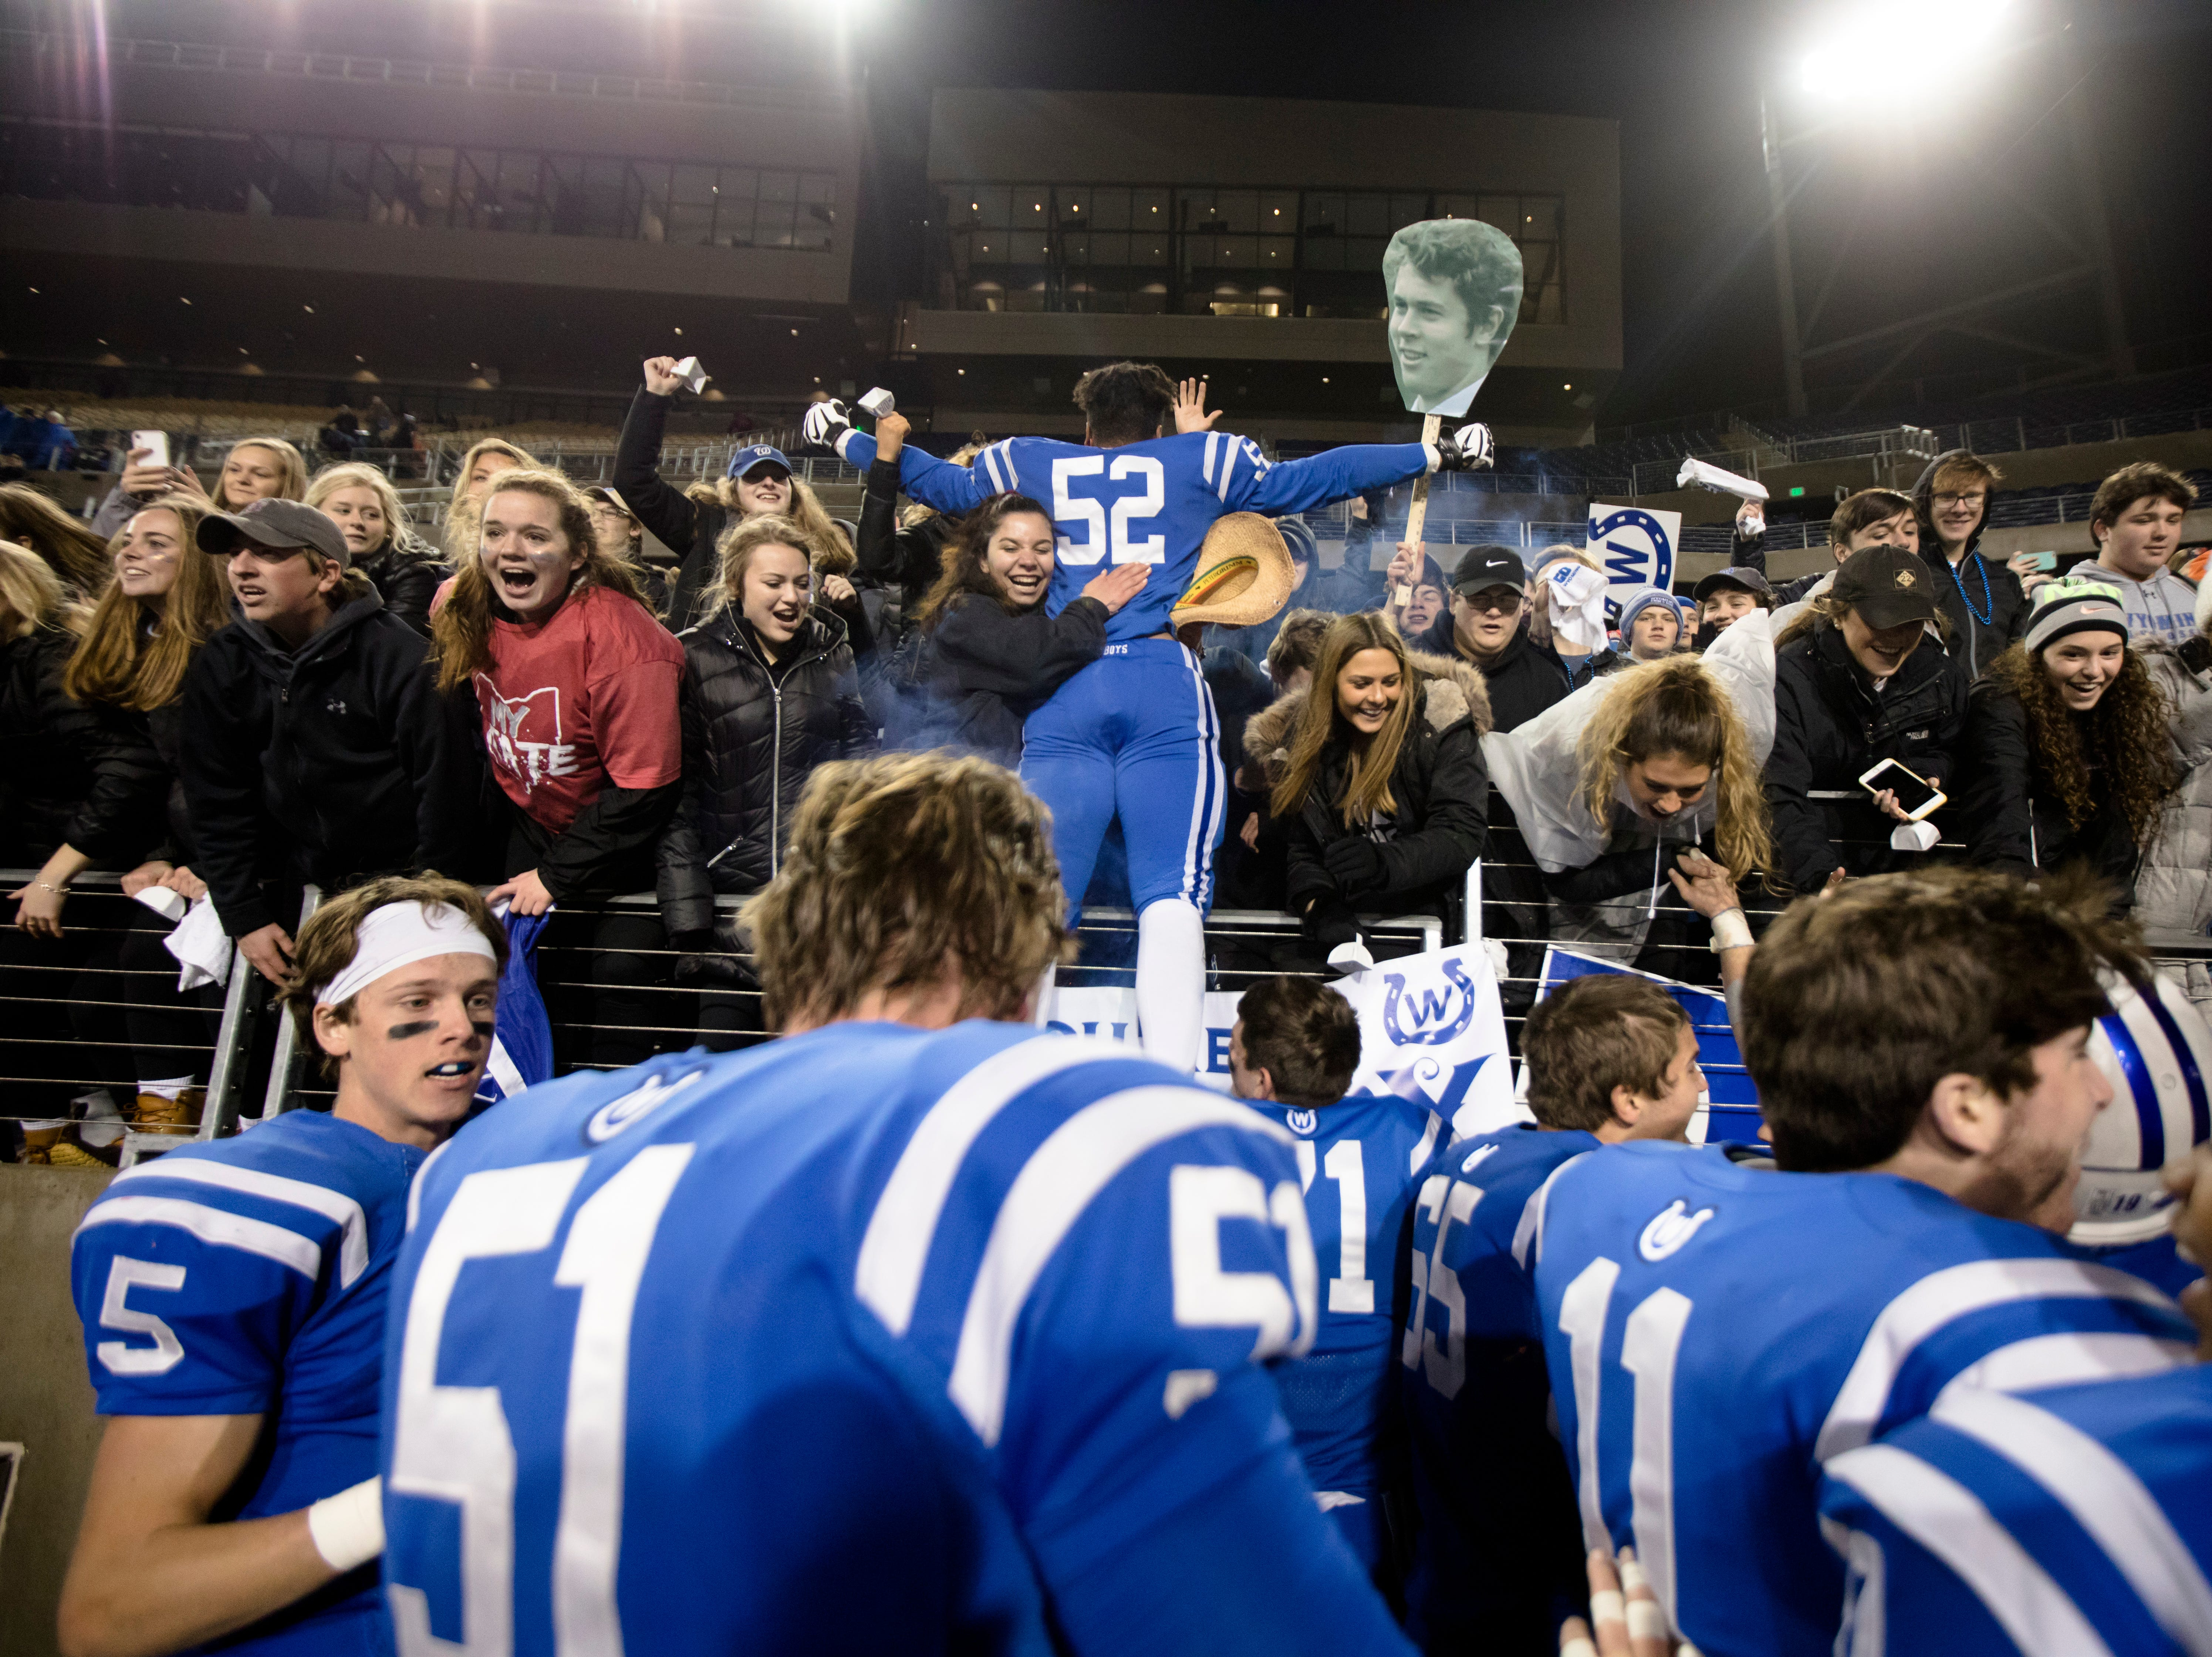 Wyoming's James Smith (52) celebrates with fans celebrate as they win the OHSAA Division IV State Championship football game between Wyoming and Girard on Saturday, Dec. 1, 2018, at Tom Benson Stadium in Canton. Wyoming defeated Girard 42-14.